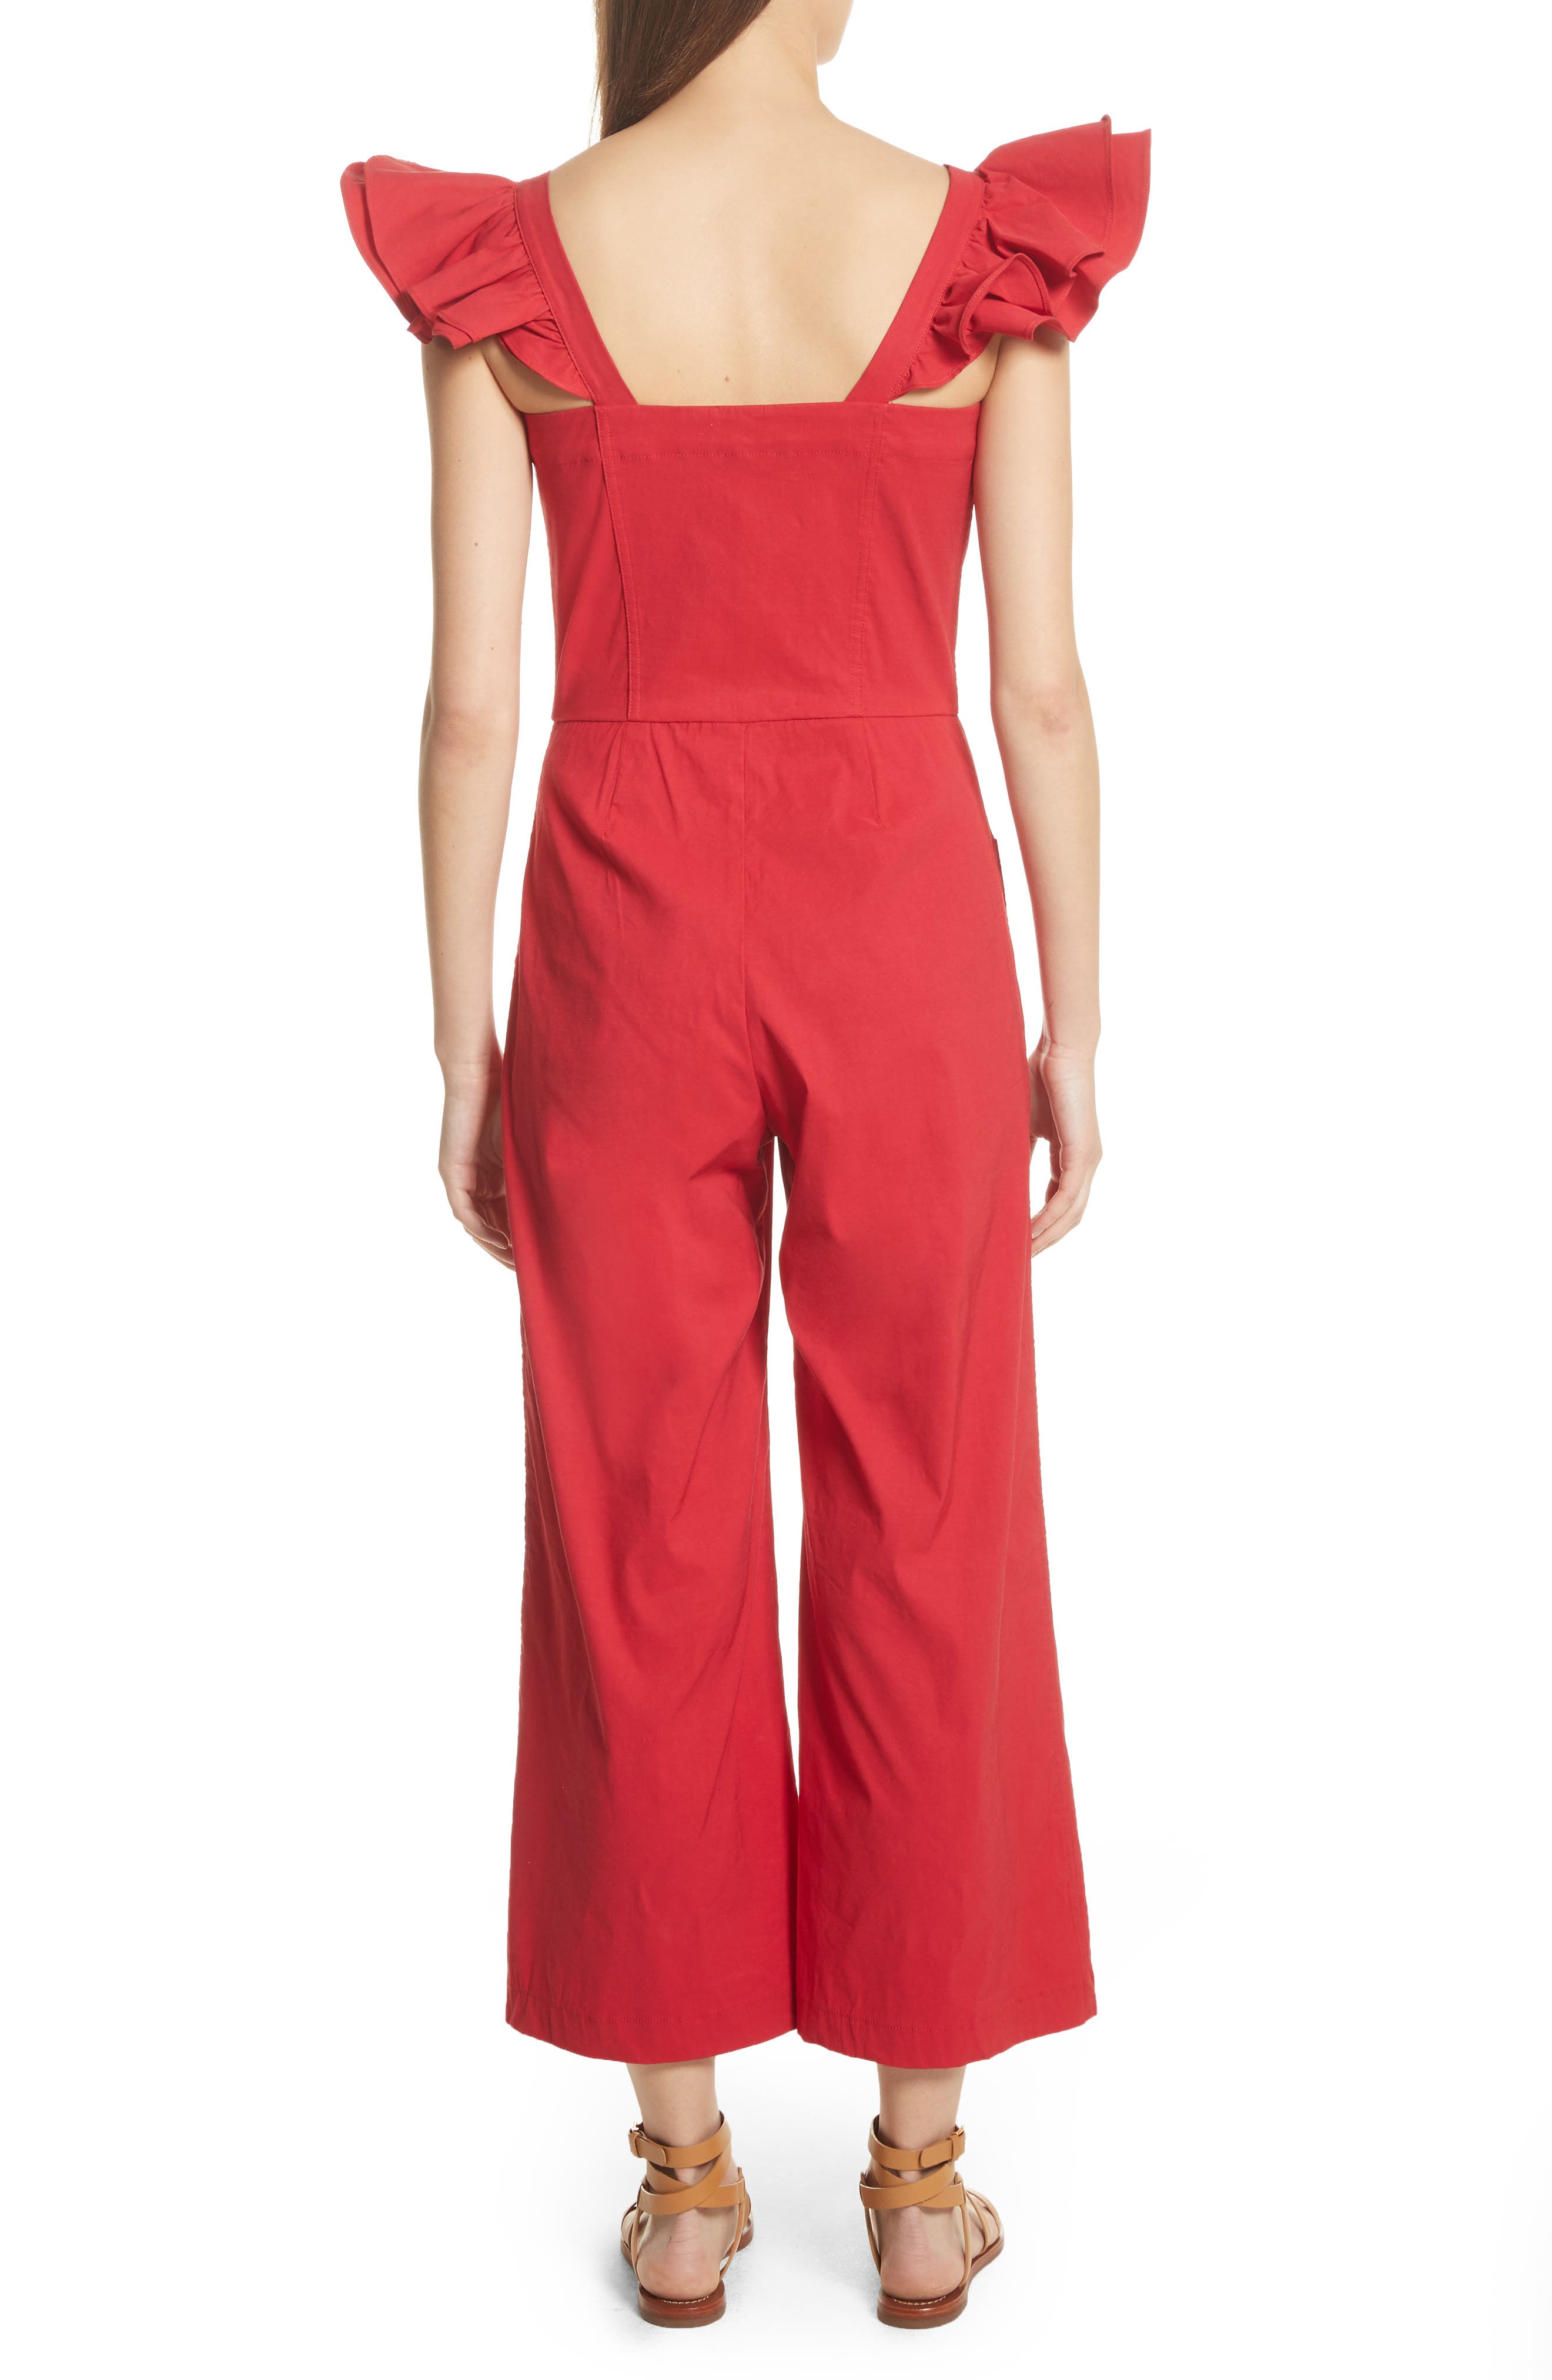 Callie Ruffle Strap Jumpsuit,                             Alternate thumbnail 2, color,                             Red